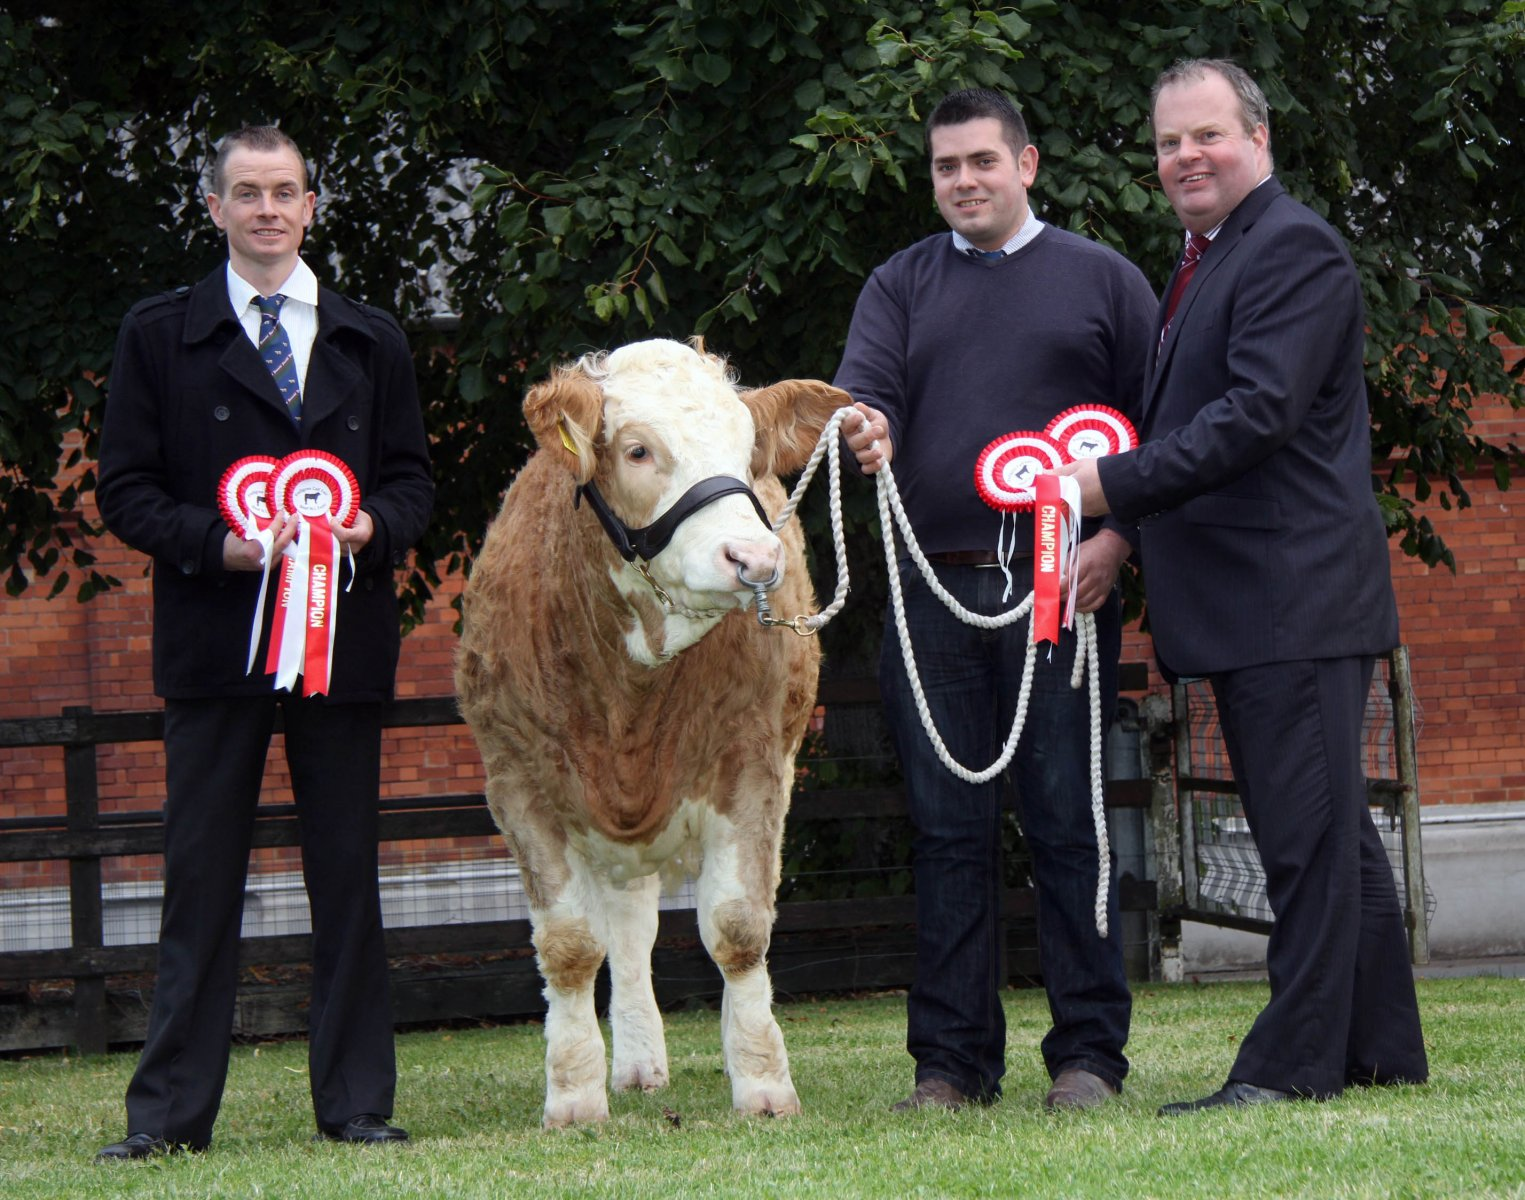 All set for the Pedigree Calf Fair @ Beef NI Expo are Richard Rodgers, chairman, NI Simmental Cattle Breeders' Club, with Richard McKeown representing the Castlemount Herd, and event chairman David Connolly.